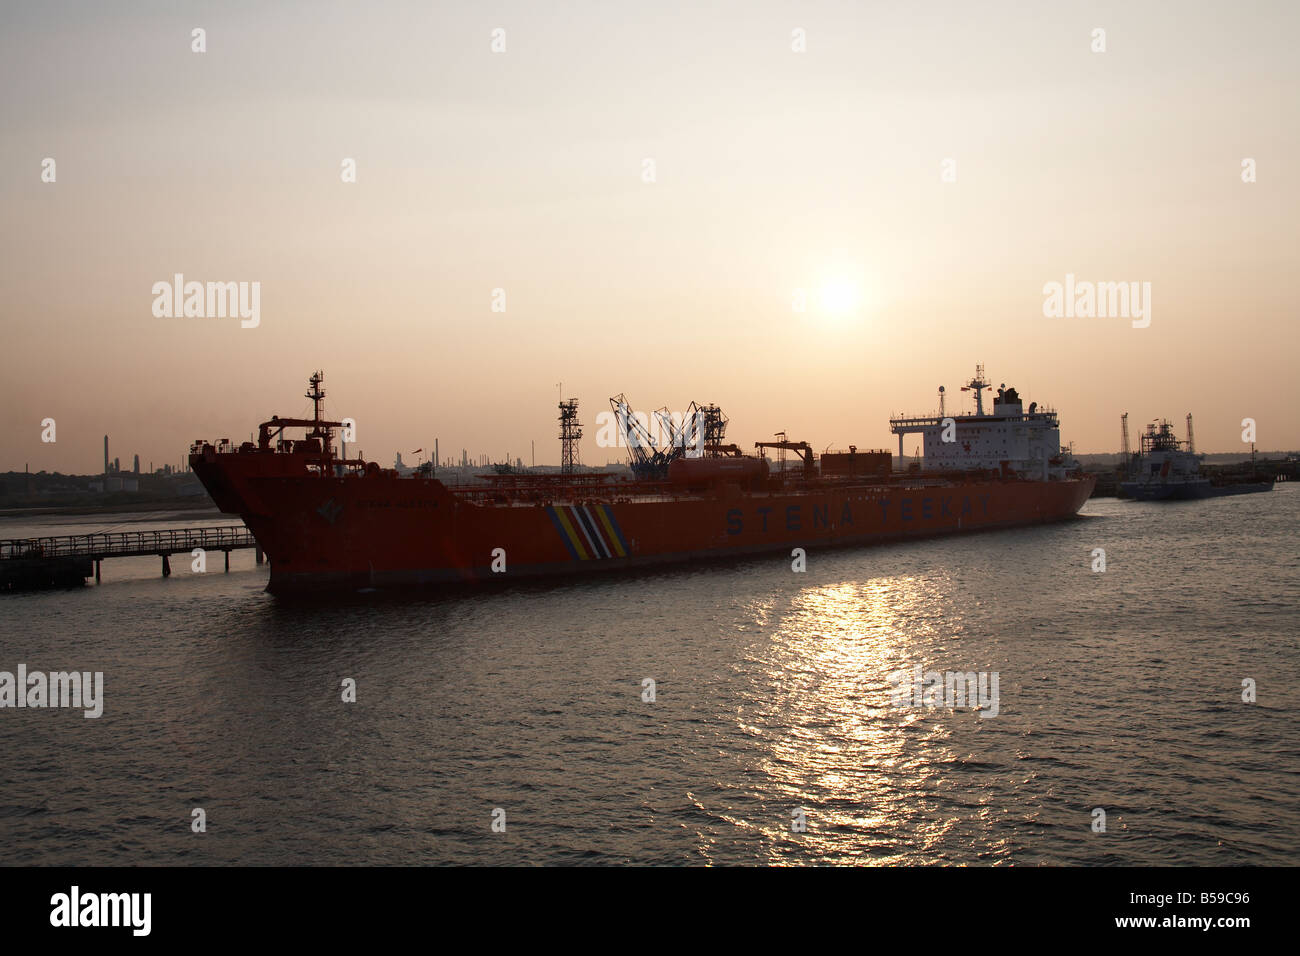 Merchant shipping vessels ships docked at Fawley oil refinery terminal port on Southampton Water in evening sunset - Stock Image